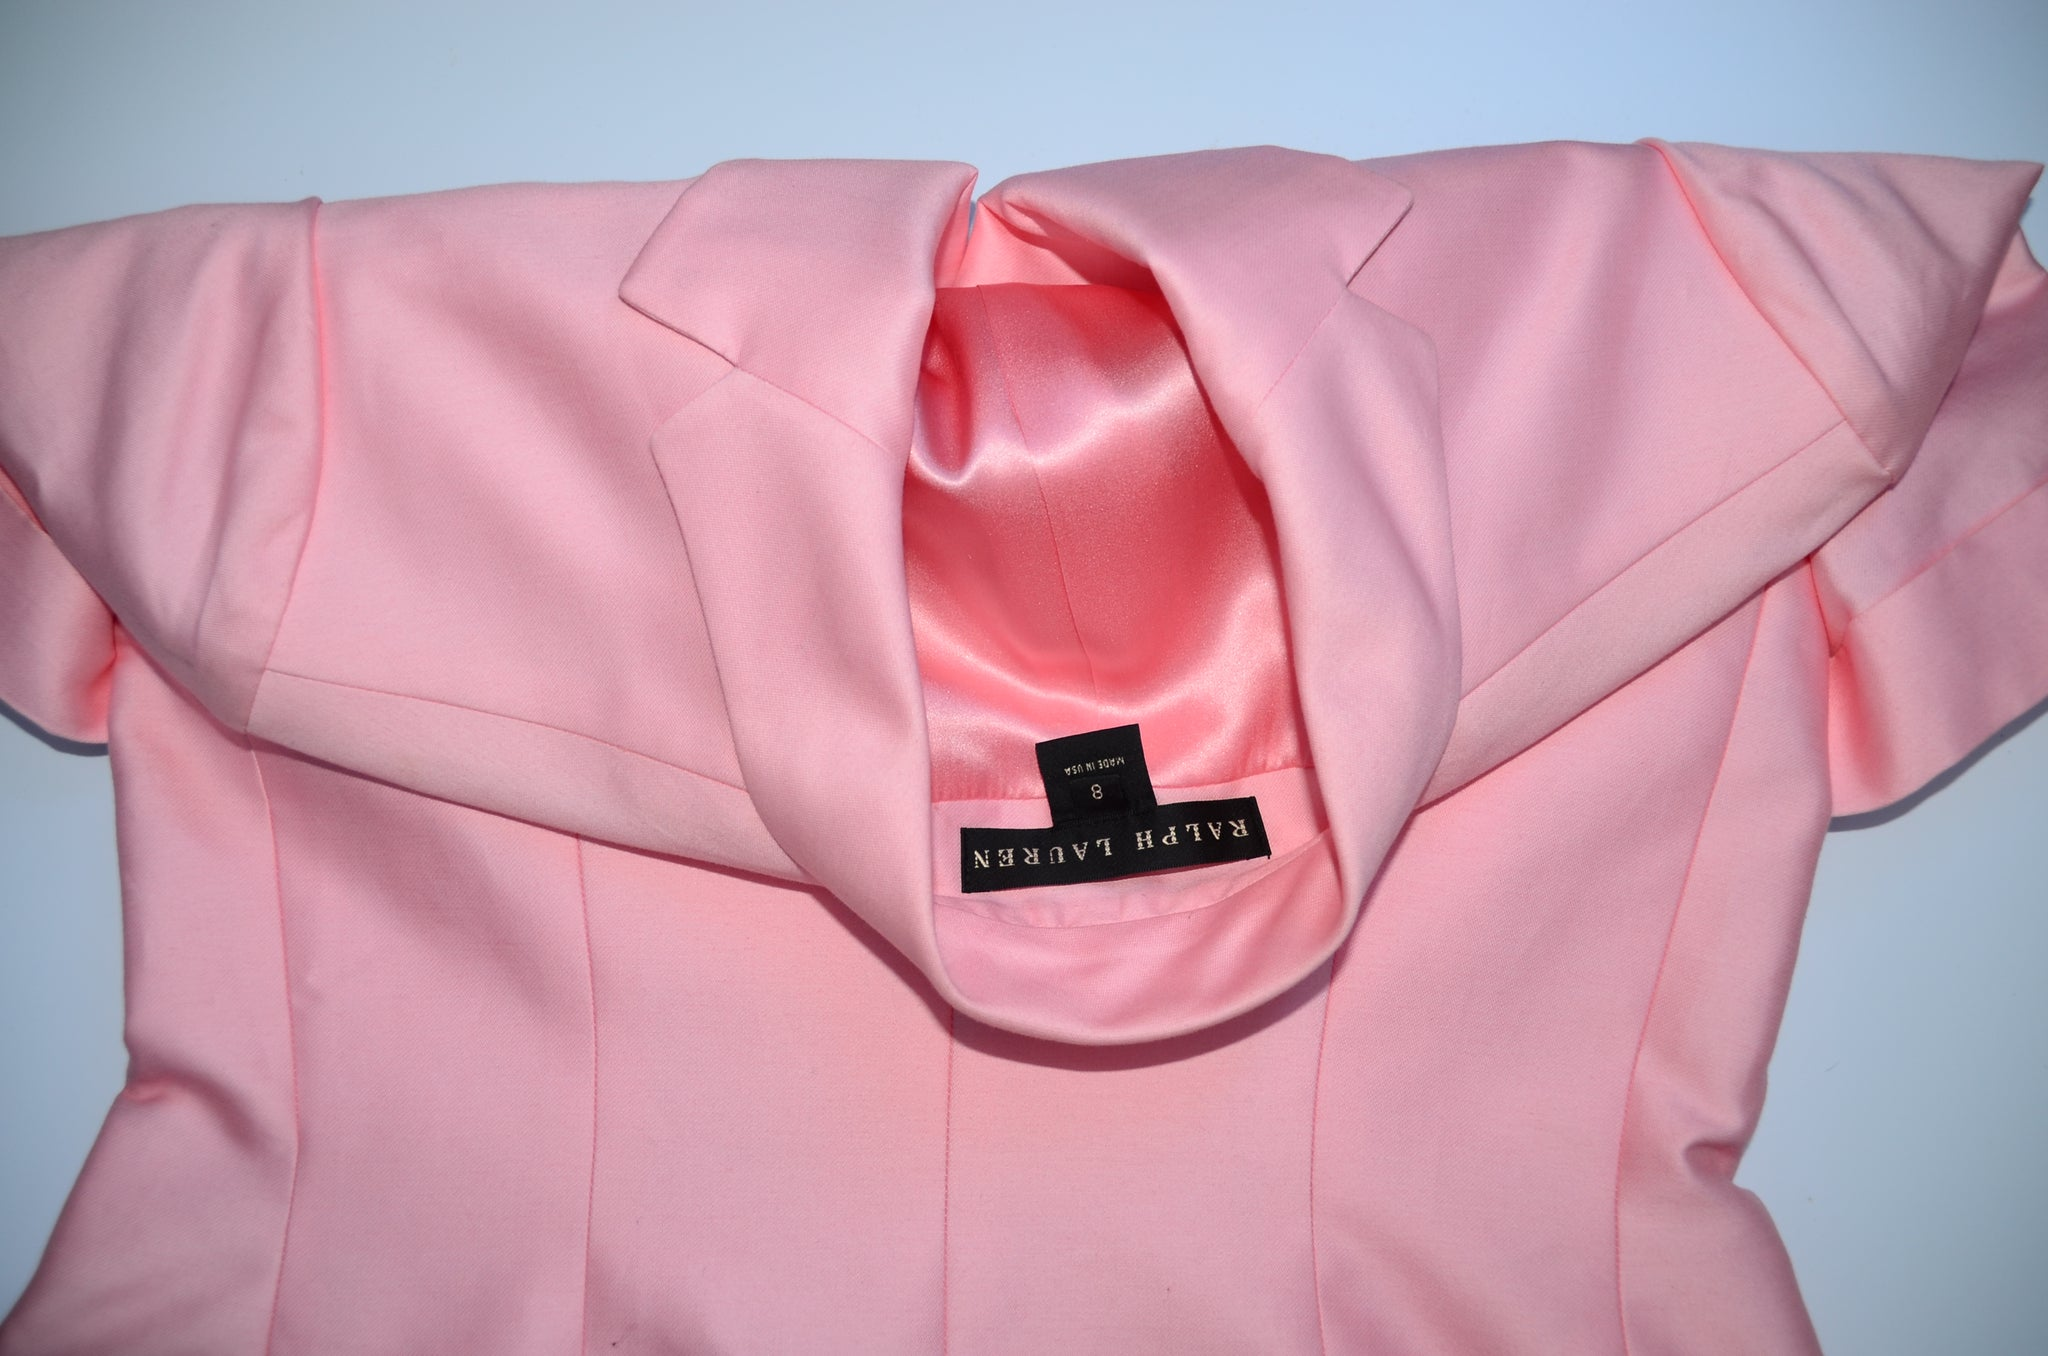 Ralph Lauren shirt - Iconics Preloved Luxury